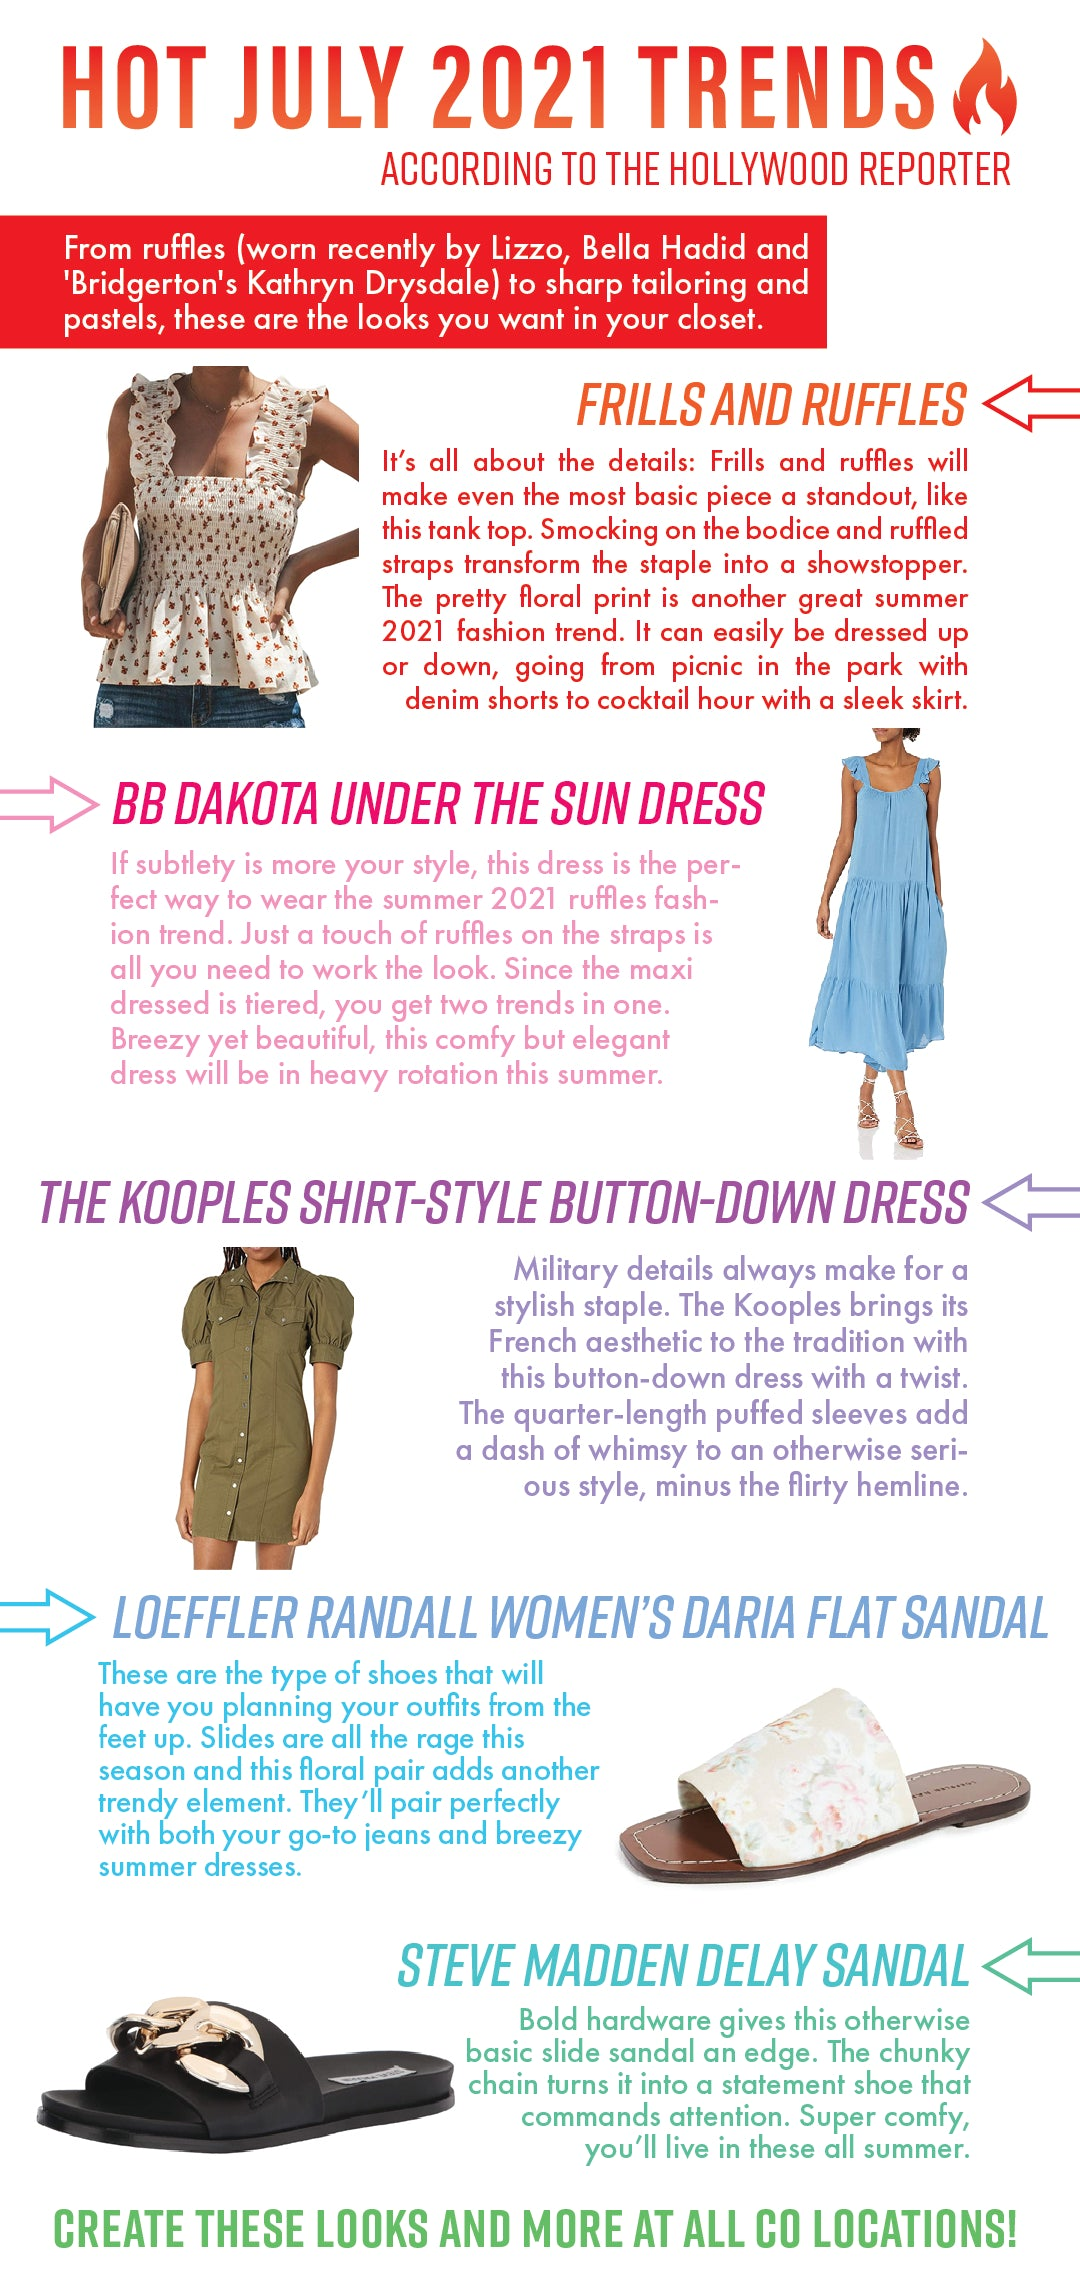 Hot July 2021 Fashion Trends